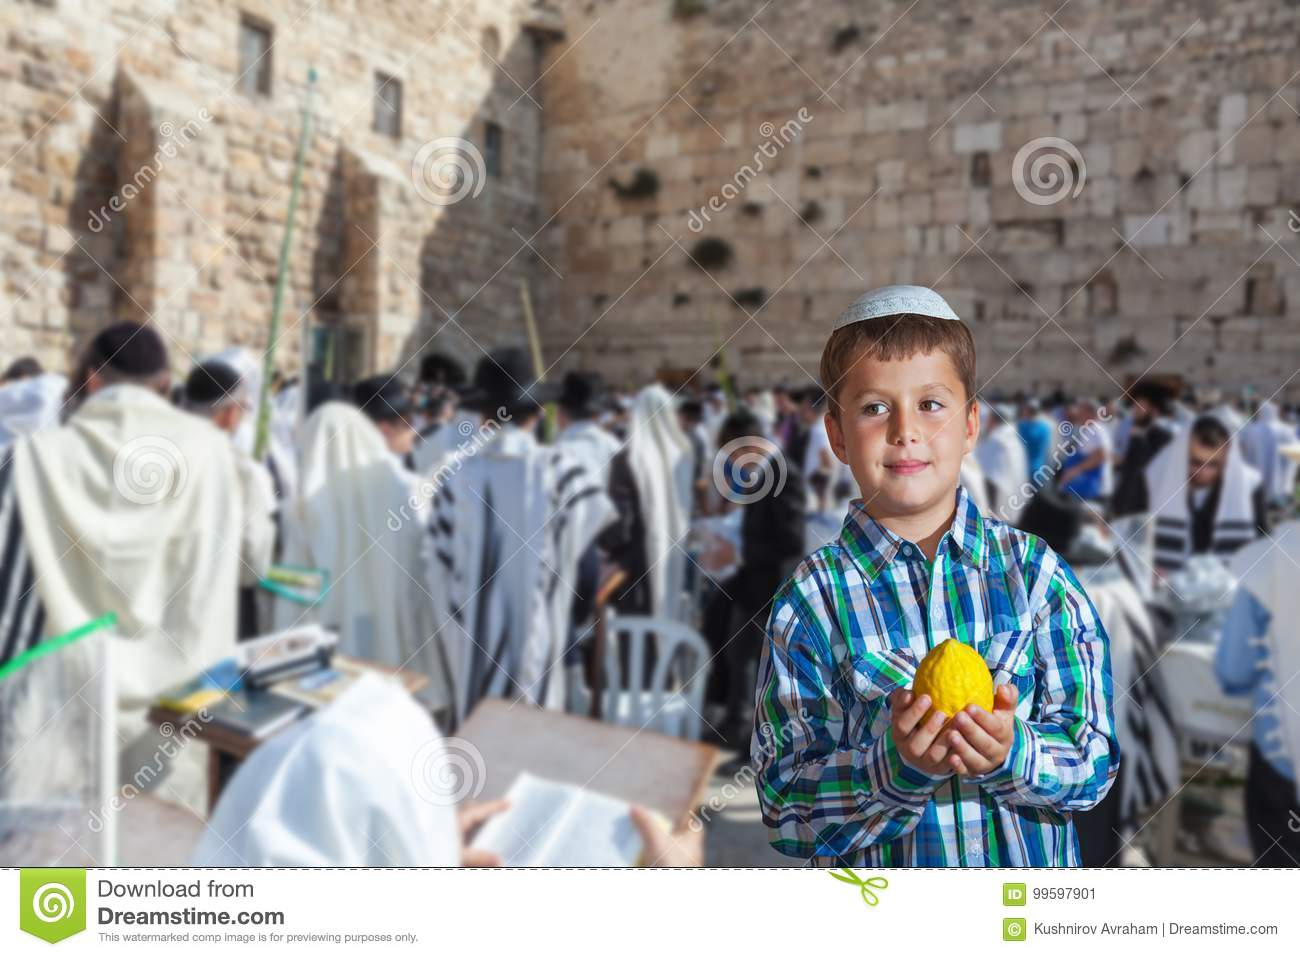 Jewish Boy In White Skullcap Stock Image - Image of skullcap, sukkot